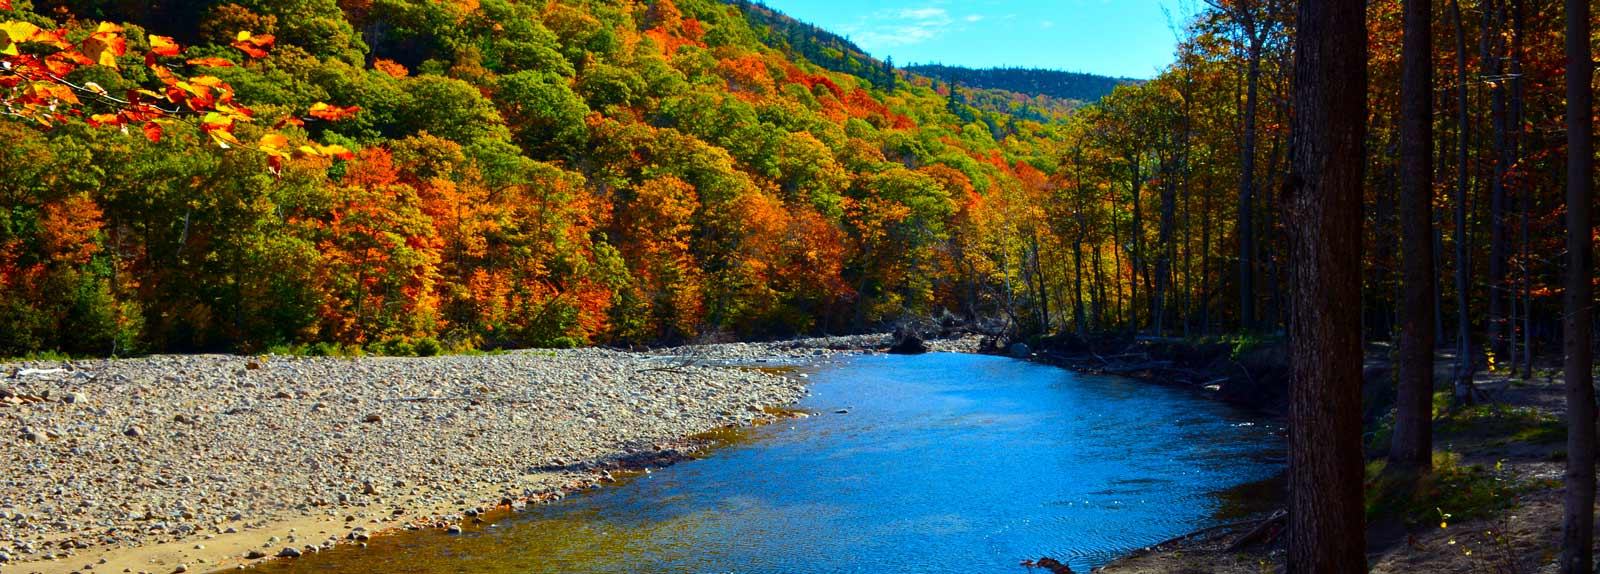 Riverbed view at Crawford Notch General Store & Campground